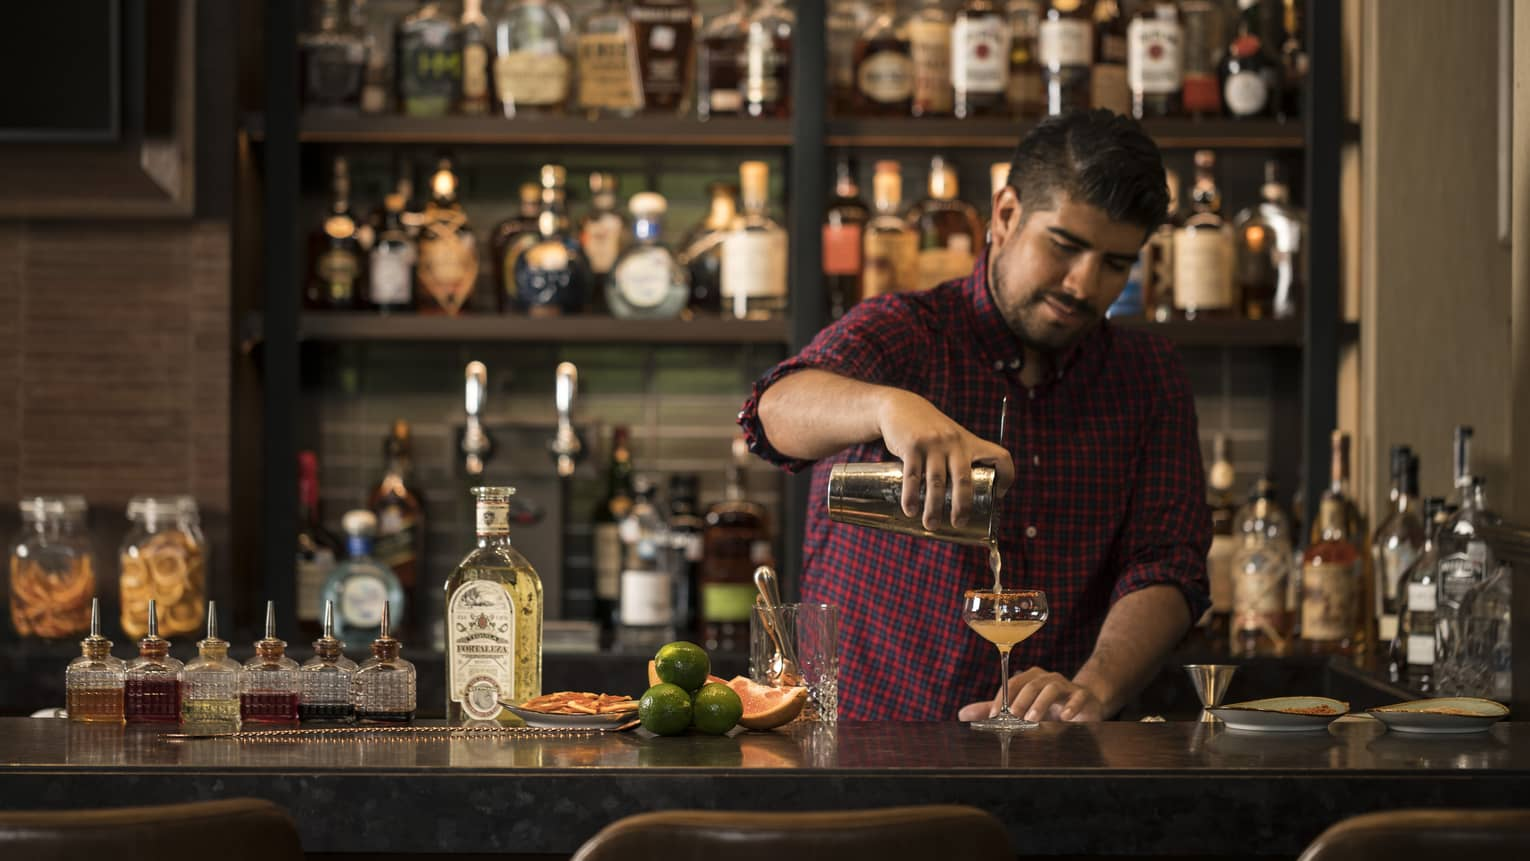 Bartender wearing red checkered shirt pours cocktail at dark bar by liquor display